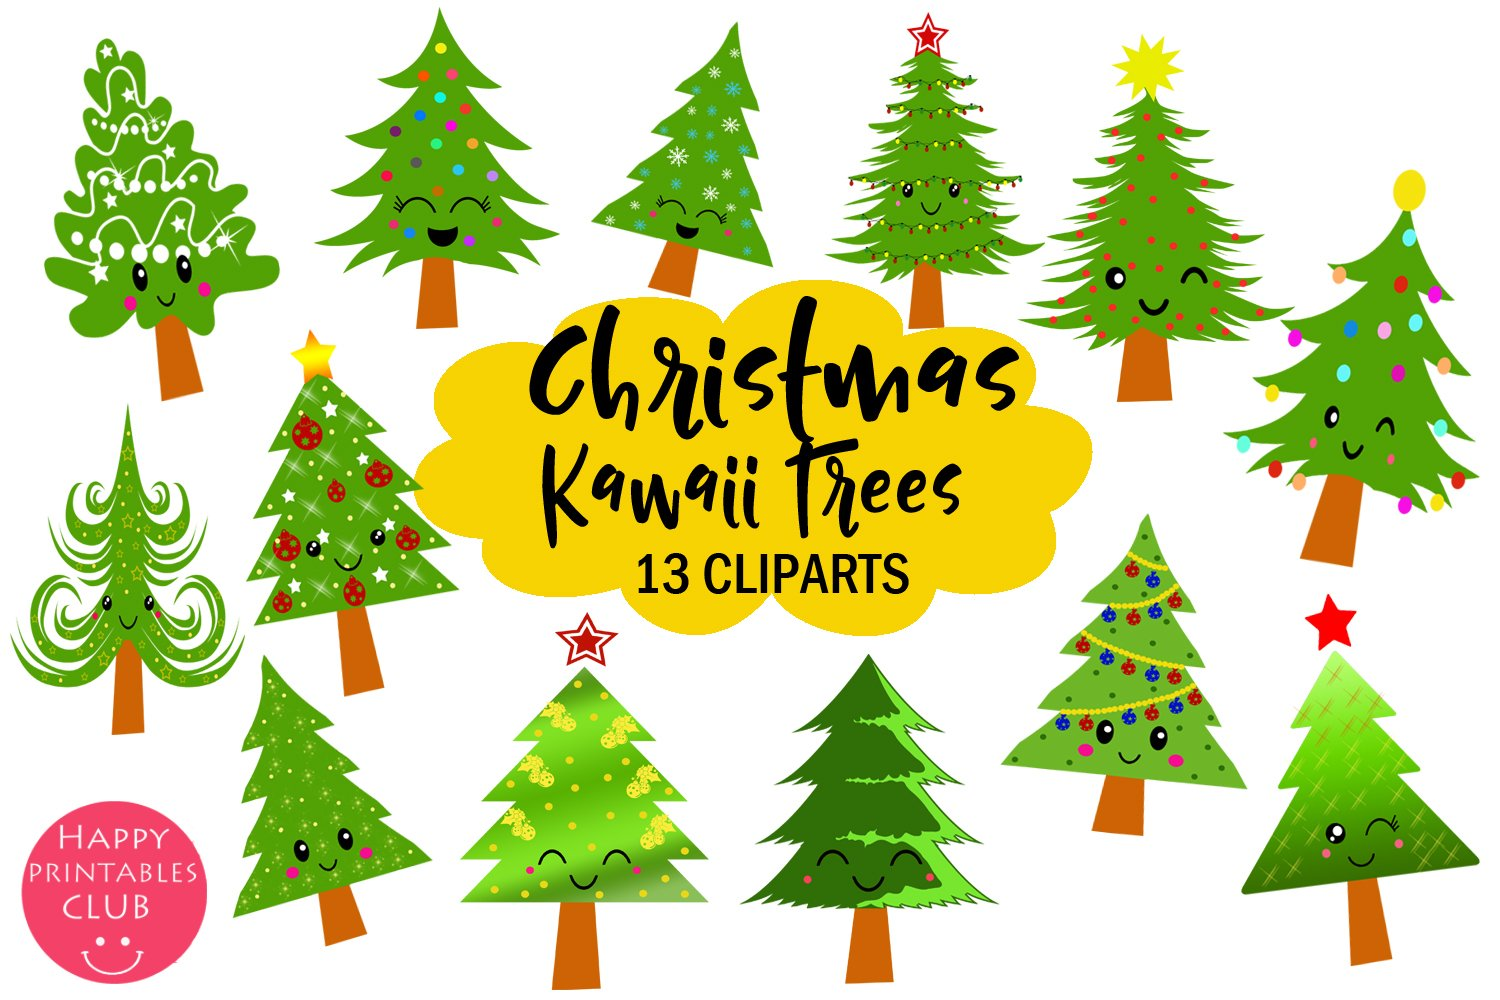 Merry Christmas Gifs And Clipart - Clipart Christmas Tree - Png Download  (#1354155) - PinClipart